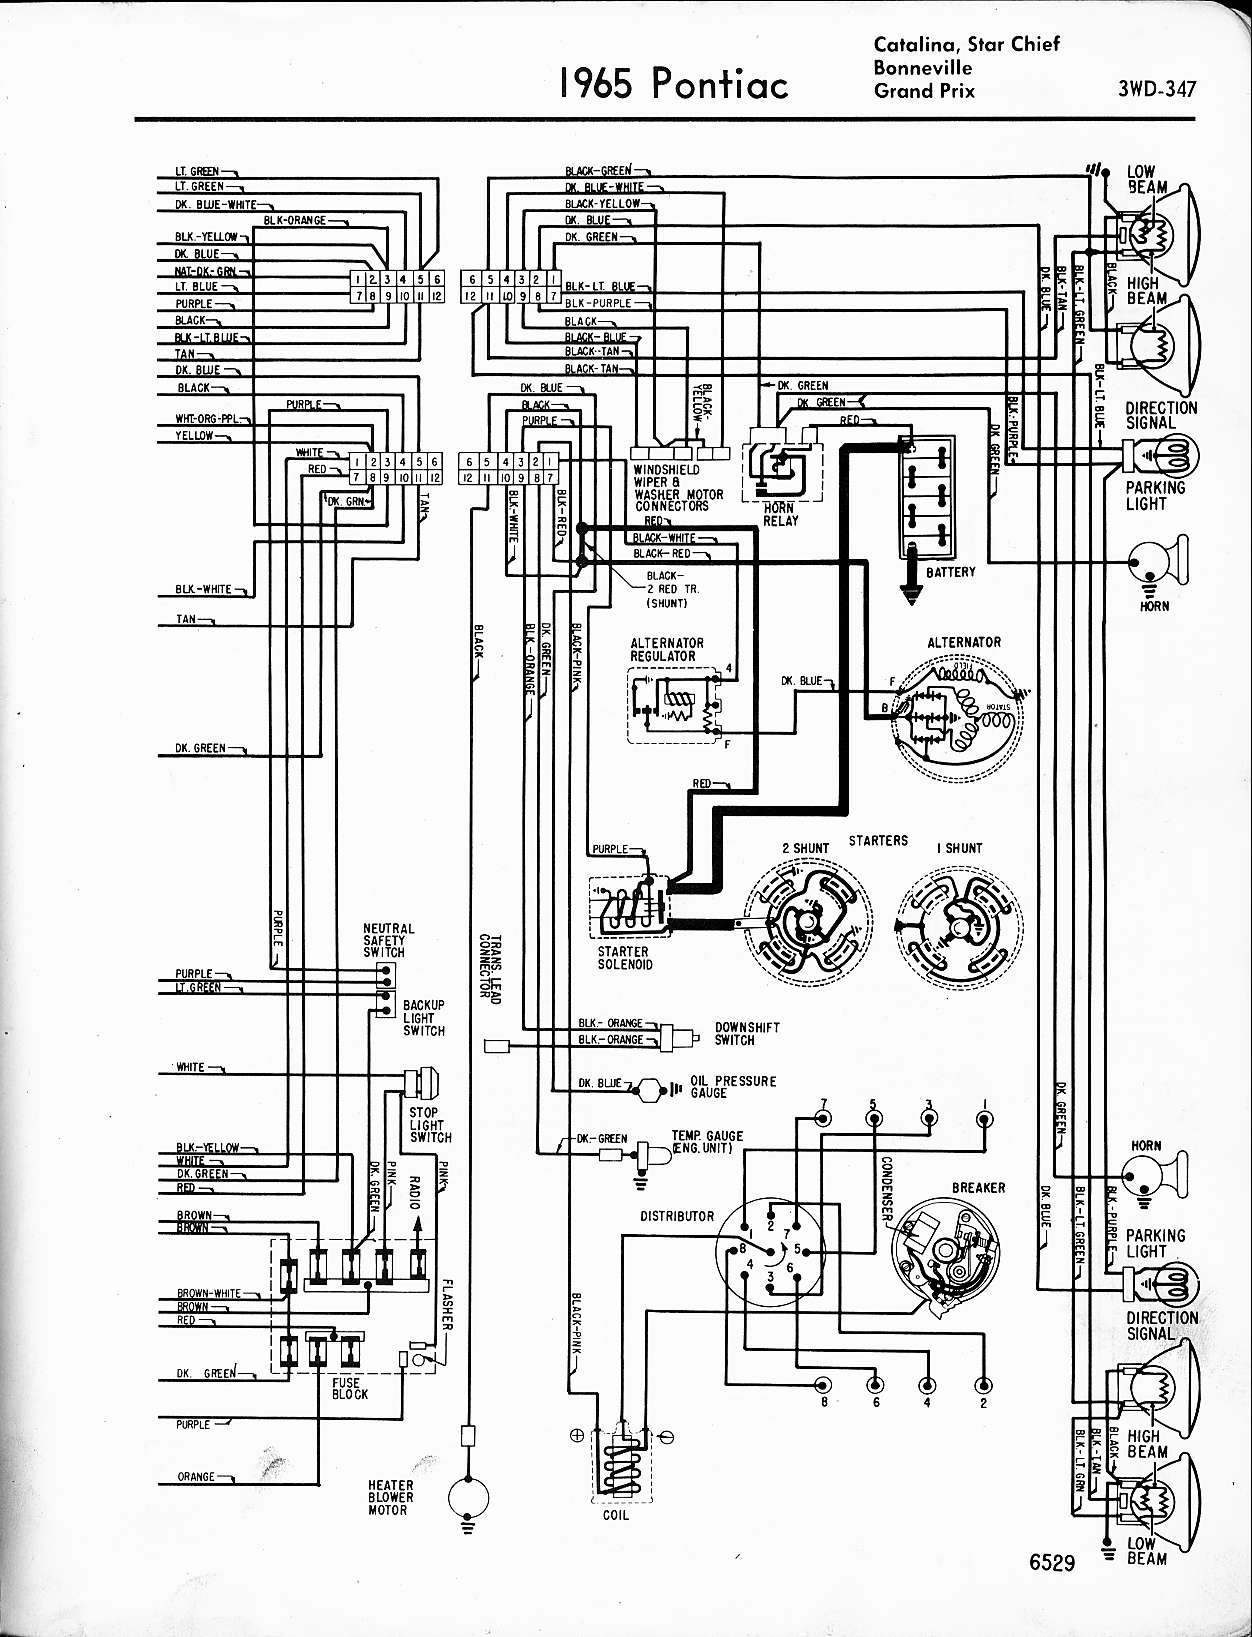 1967 Pontiac Catalina Wiring Diagrams Wiring Diagram View A View A Zaafran It